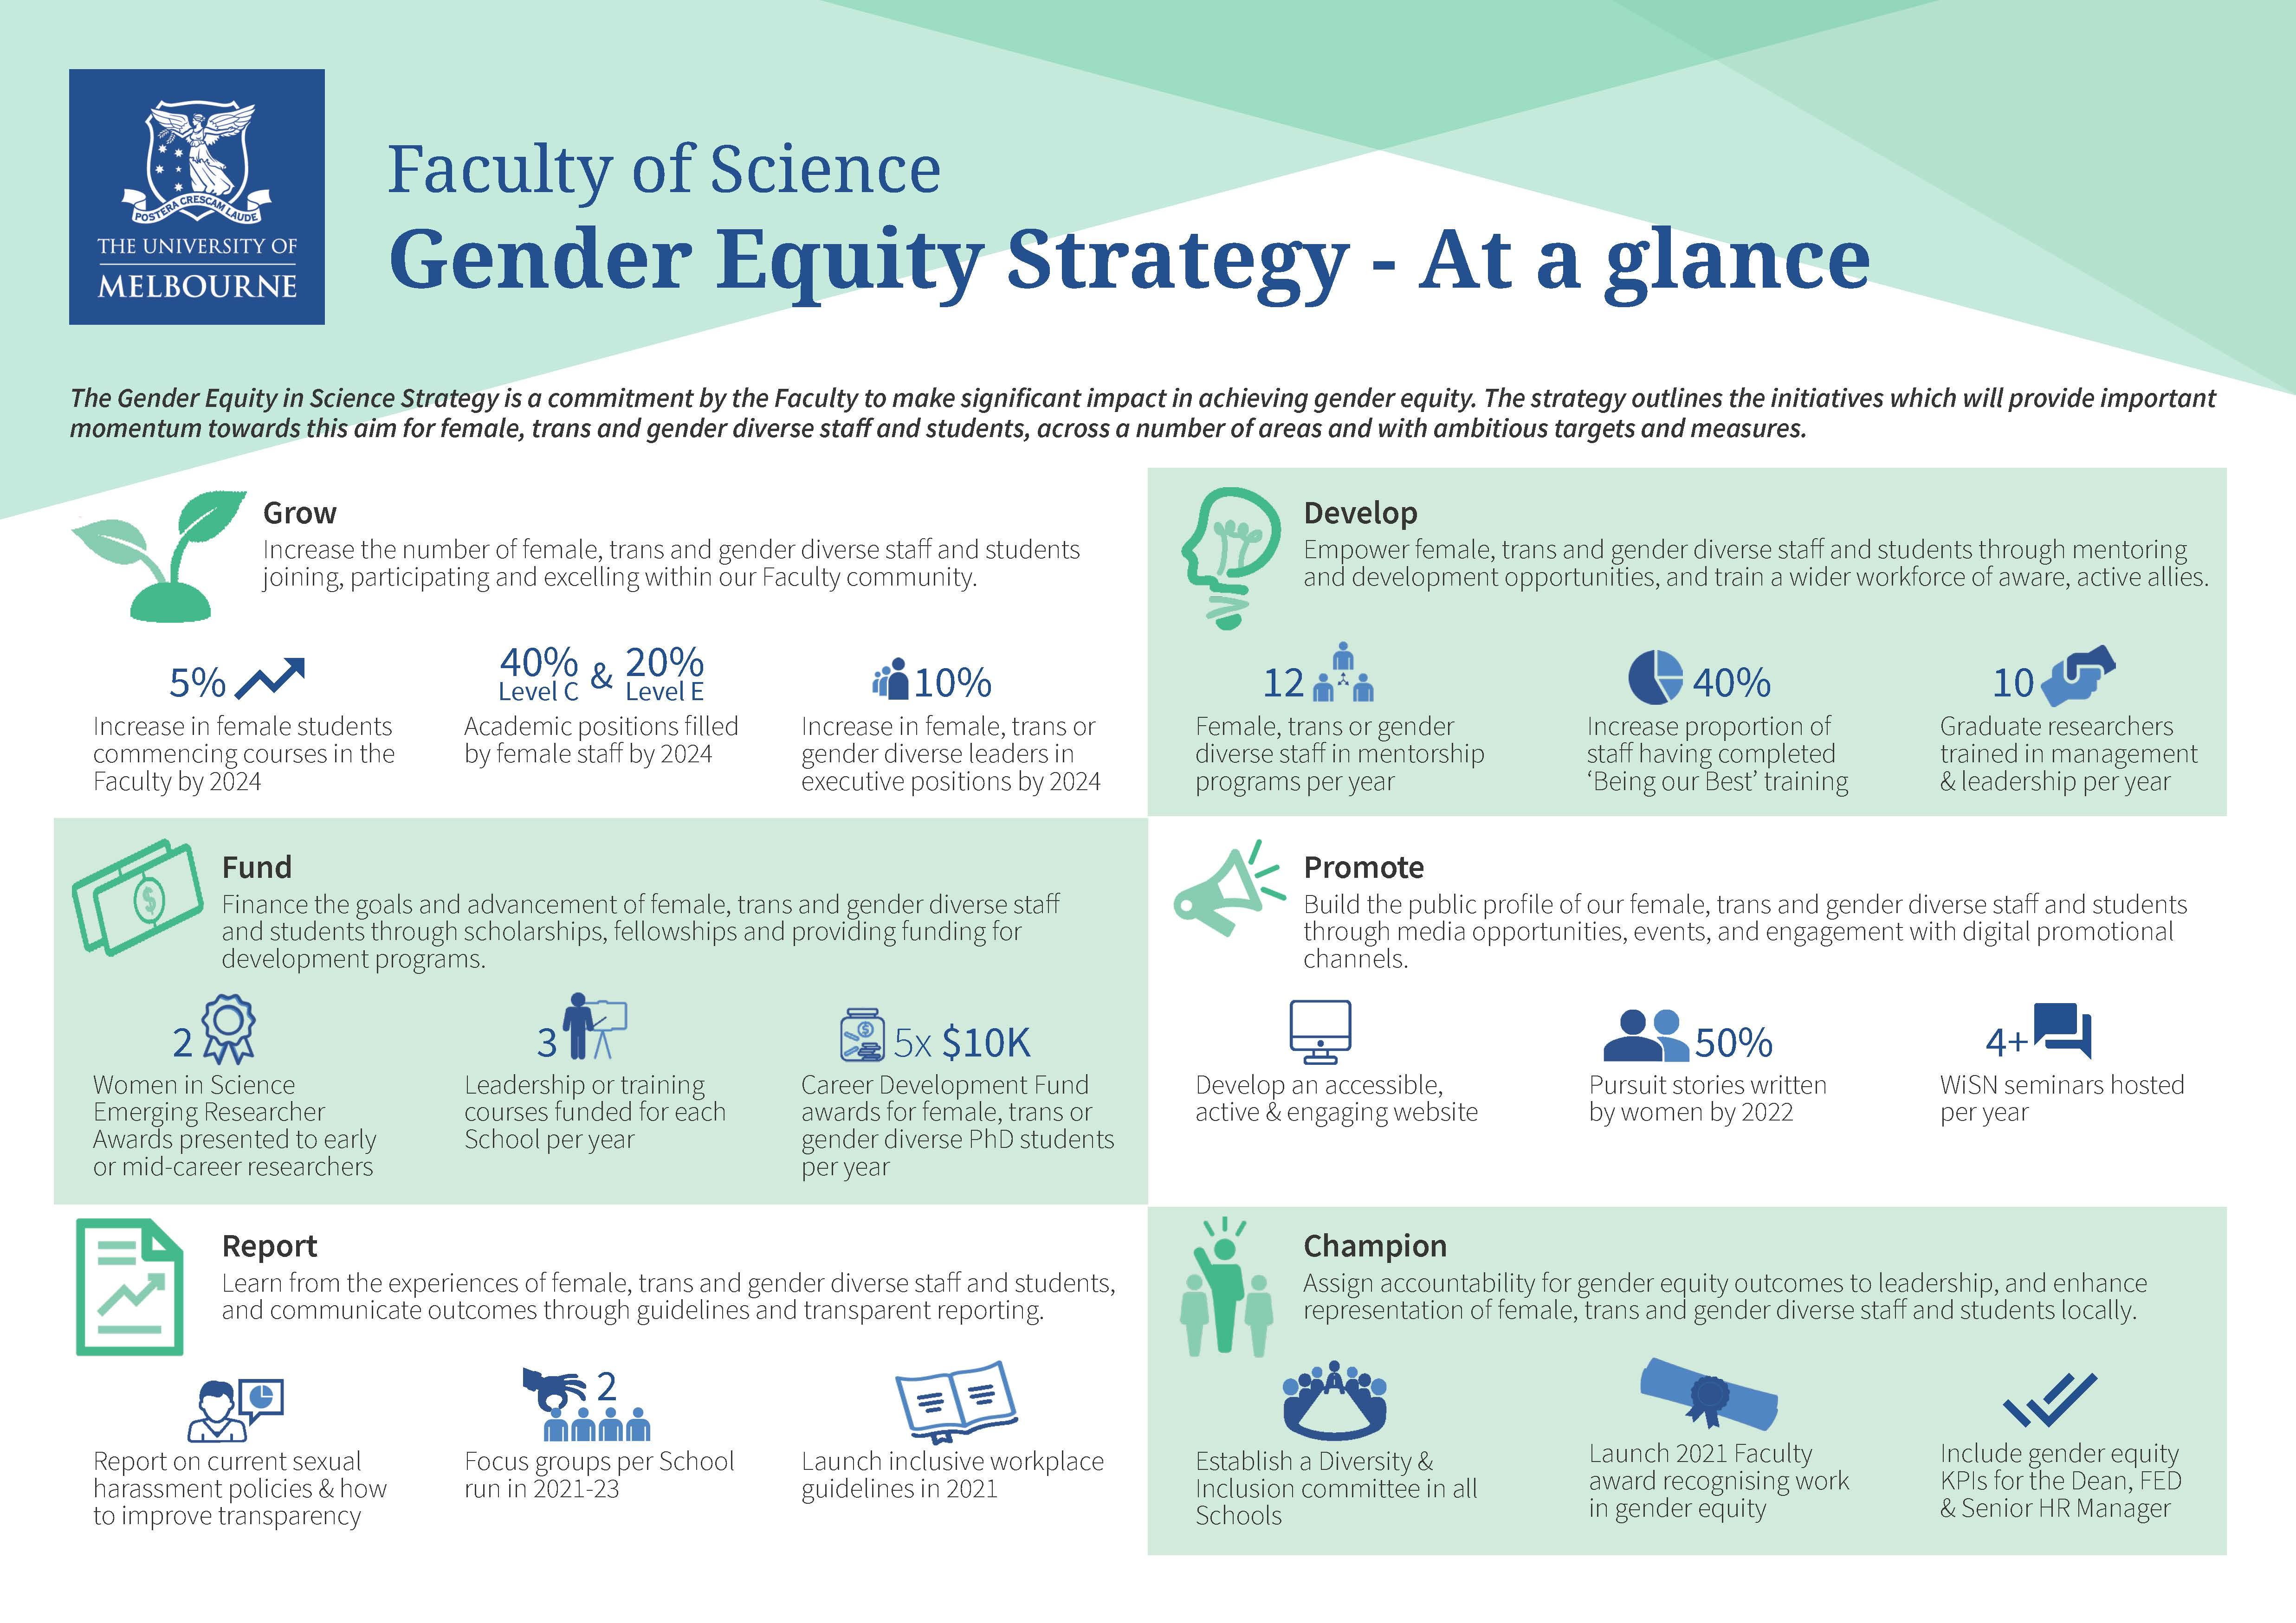 Our gender equity strategy